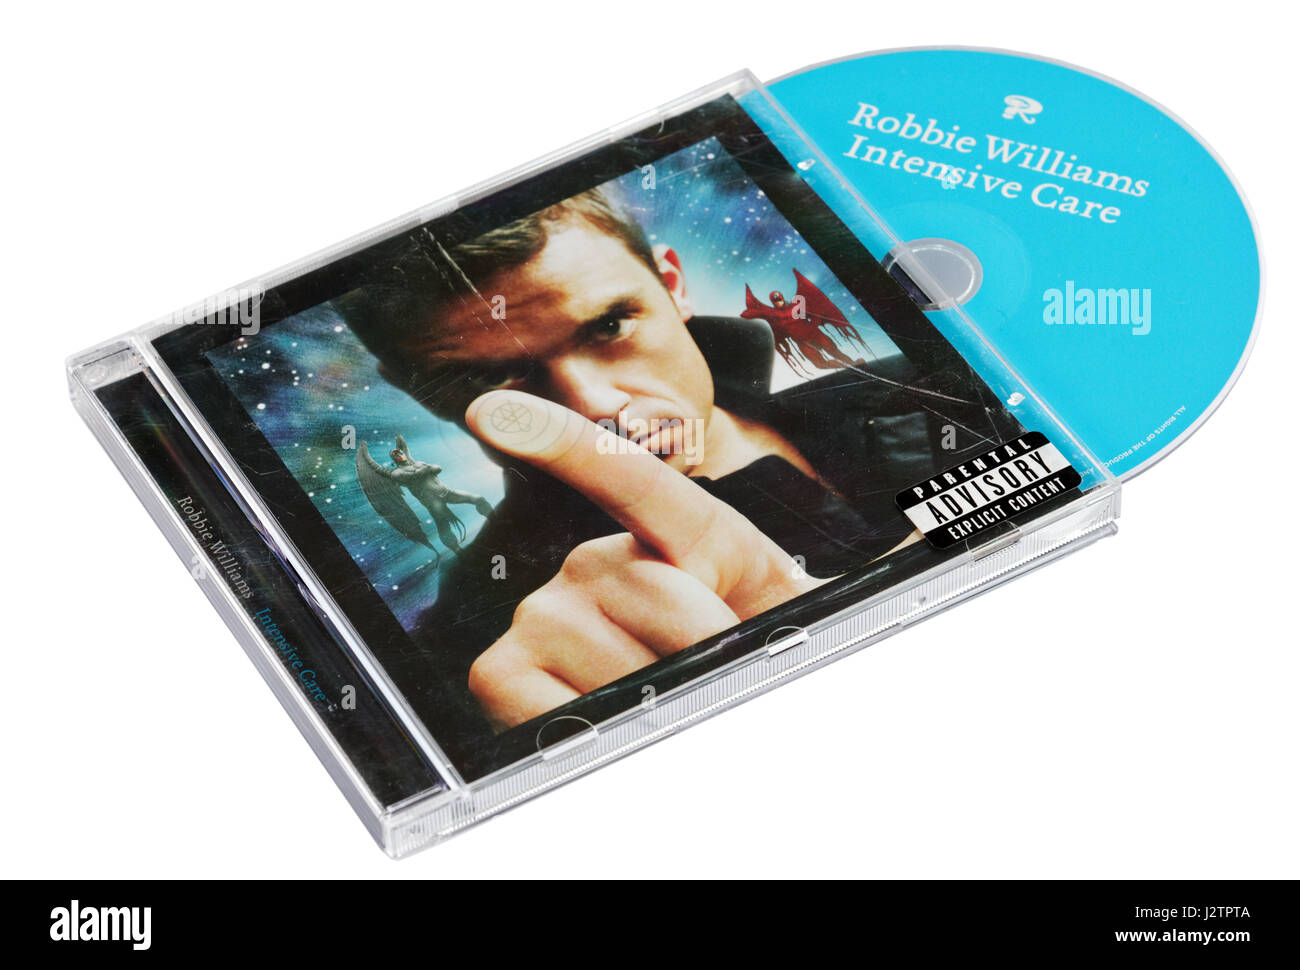 Intensive Care by Robbie Williams - Stock Image